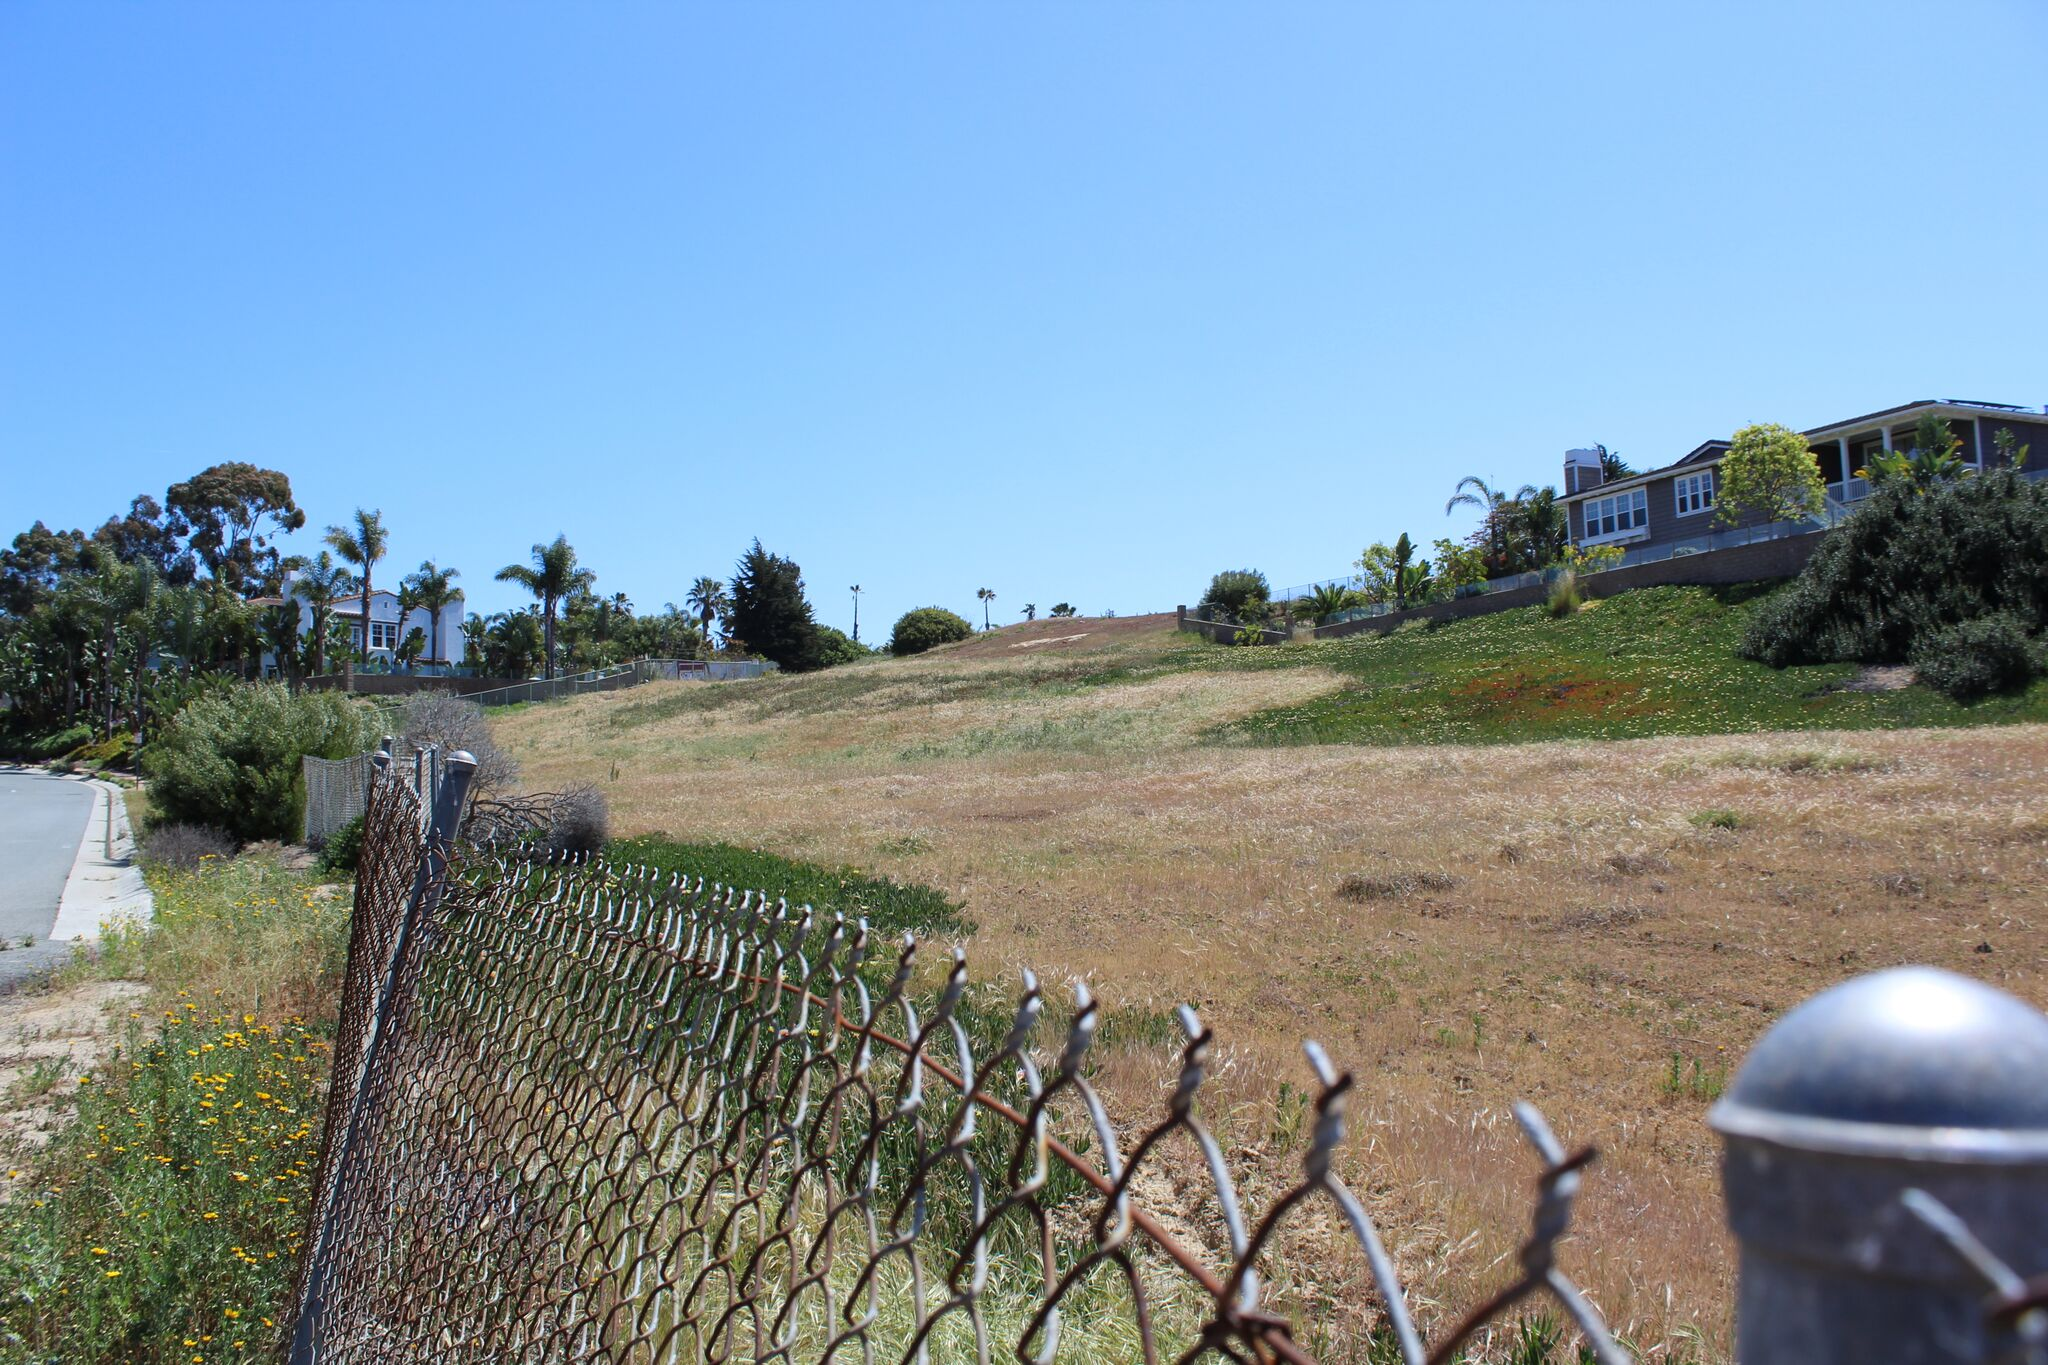 Standard Pacific Park design gets thumbs up